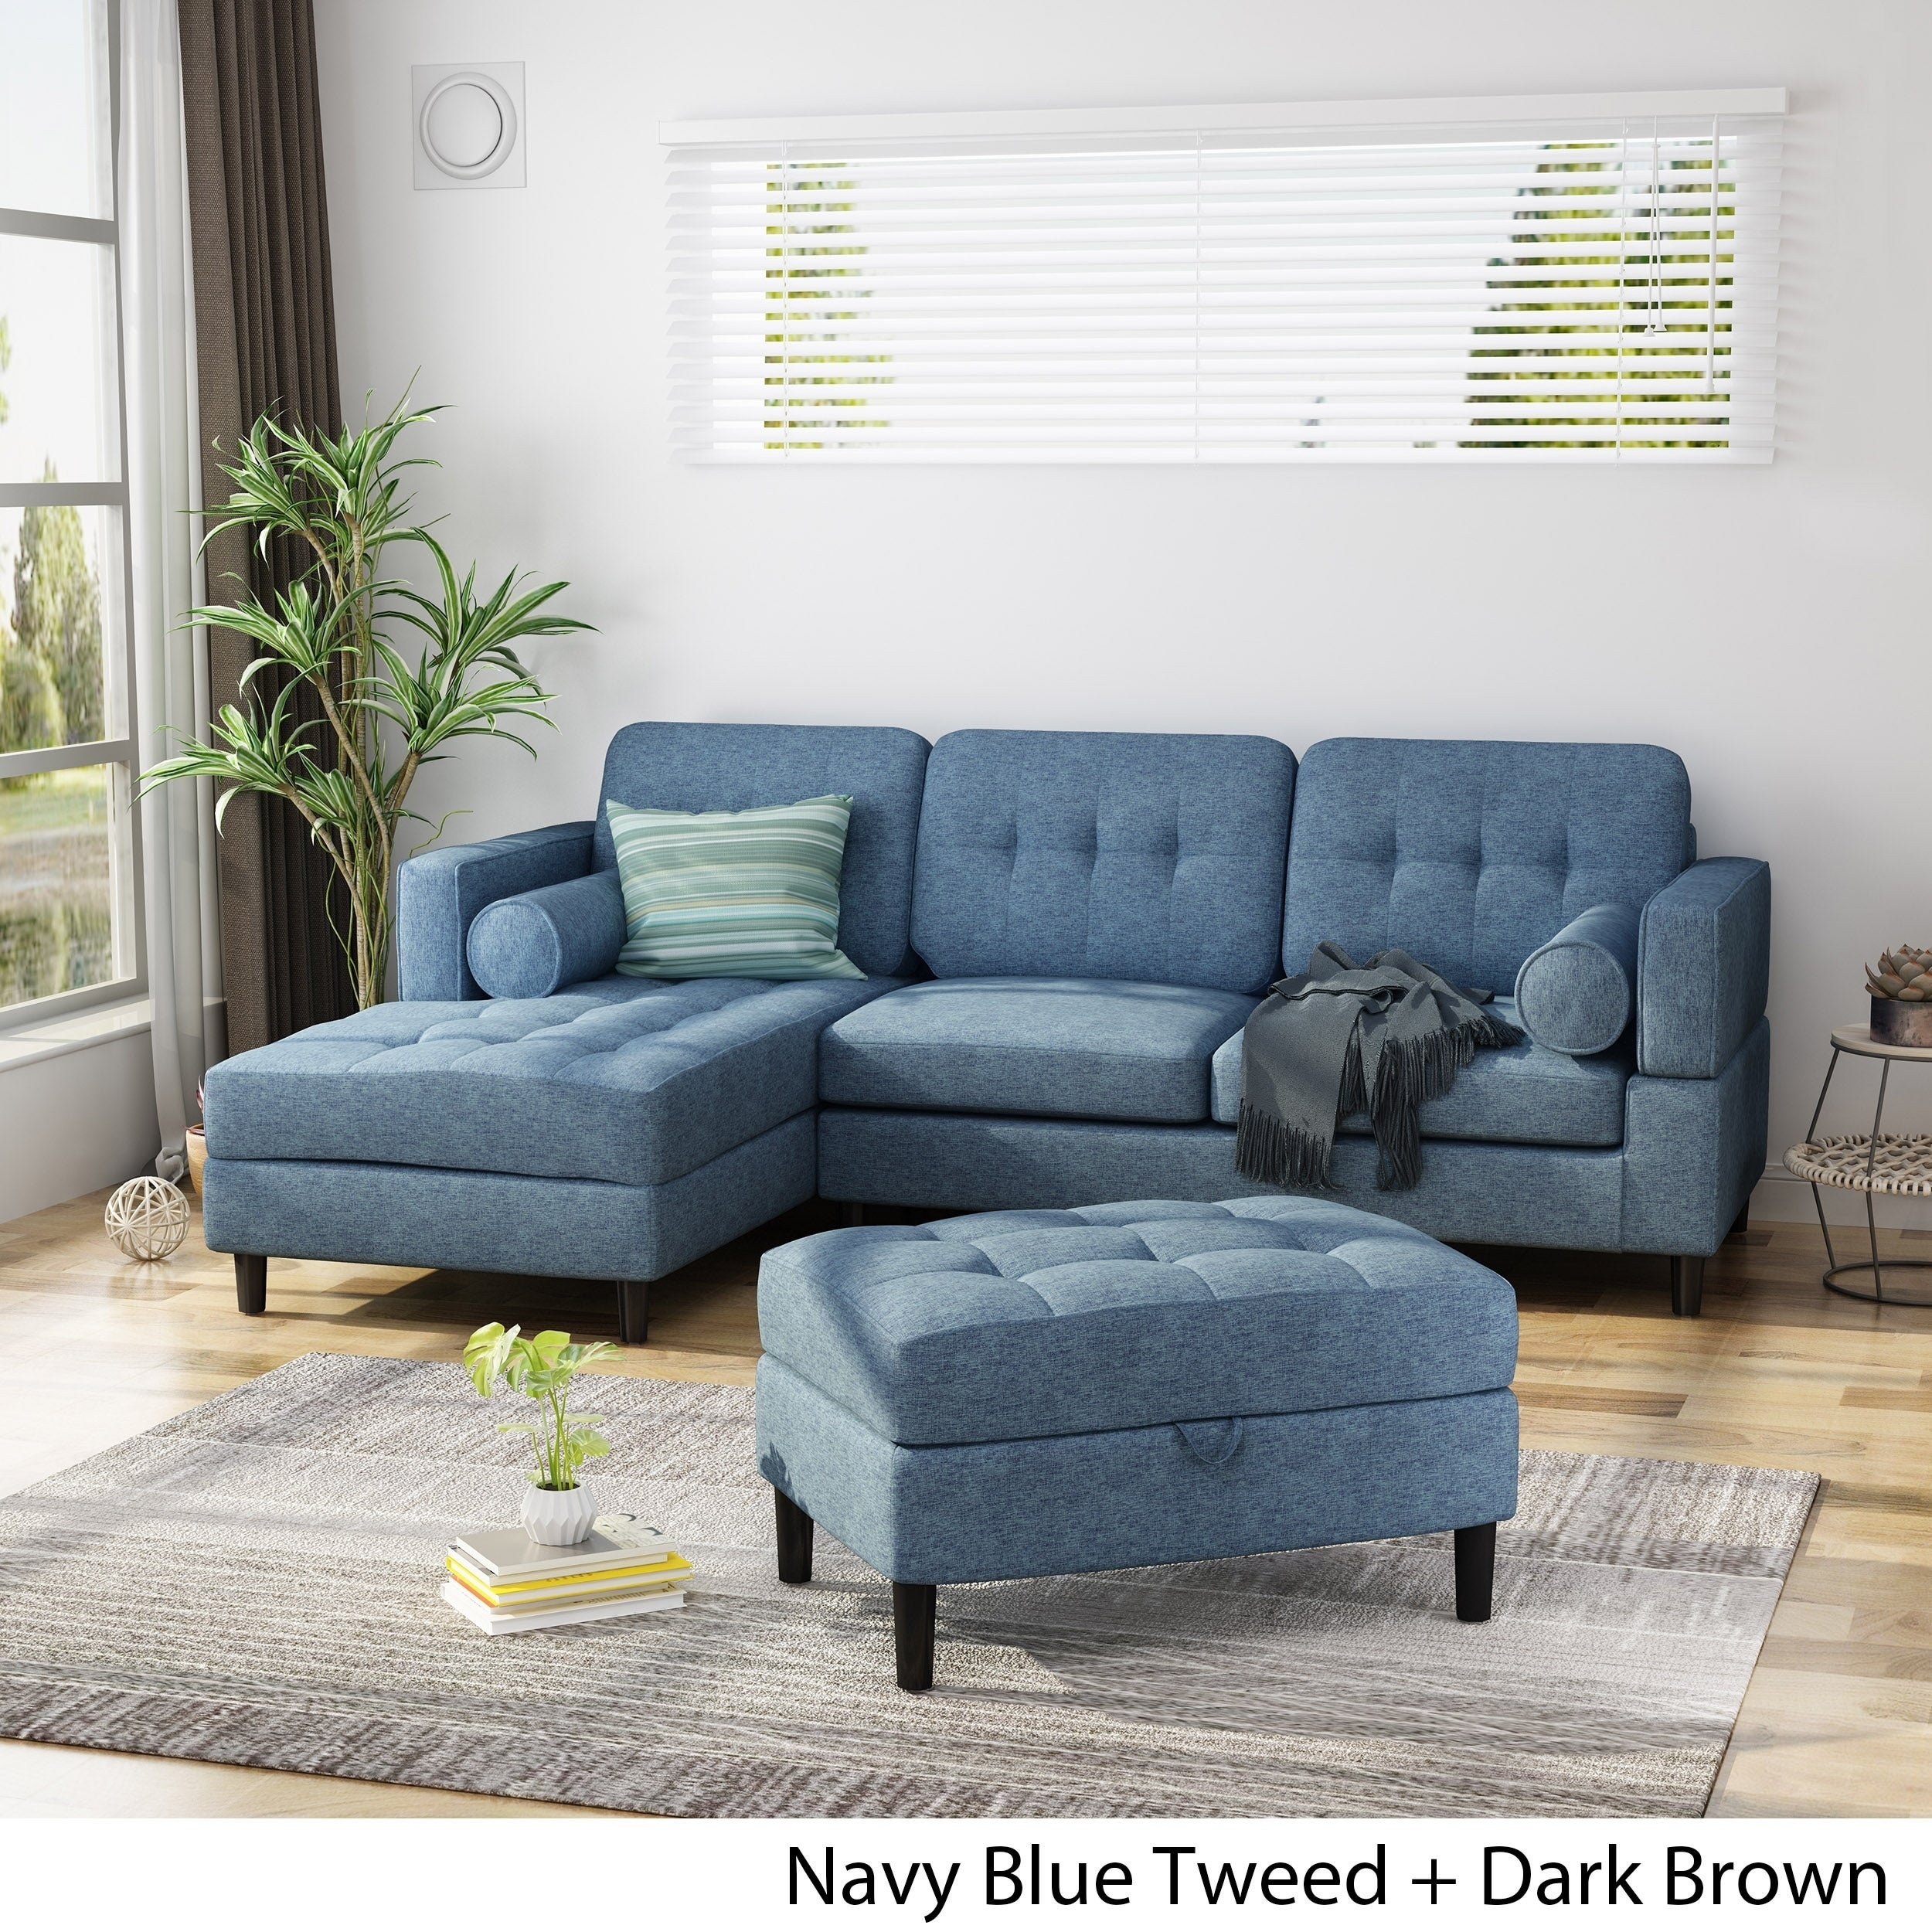 2 Piece Chaise Sectional Sofa Set